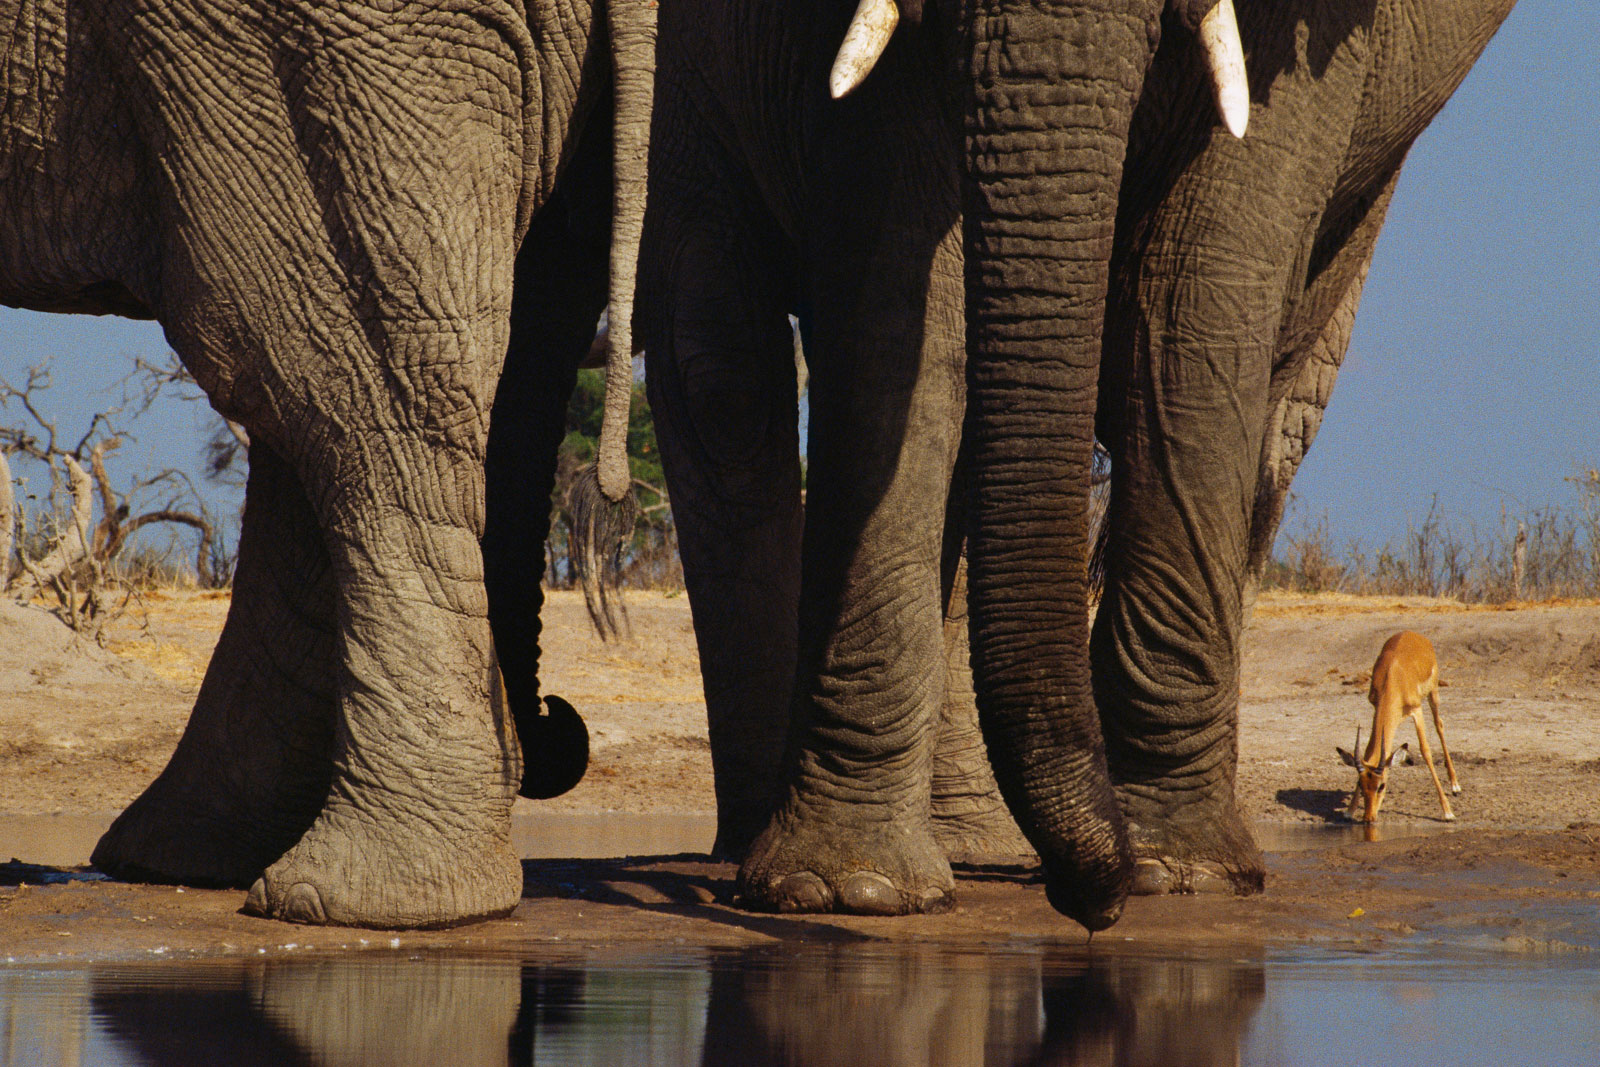 African elephants and impala, Chobe National Park, Botswana